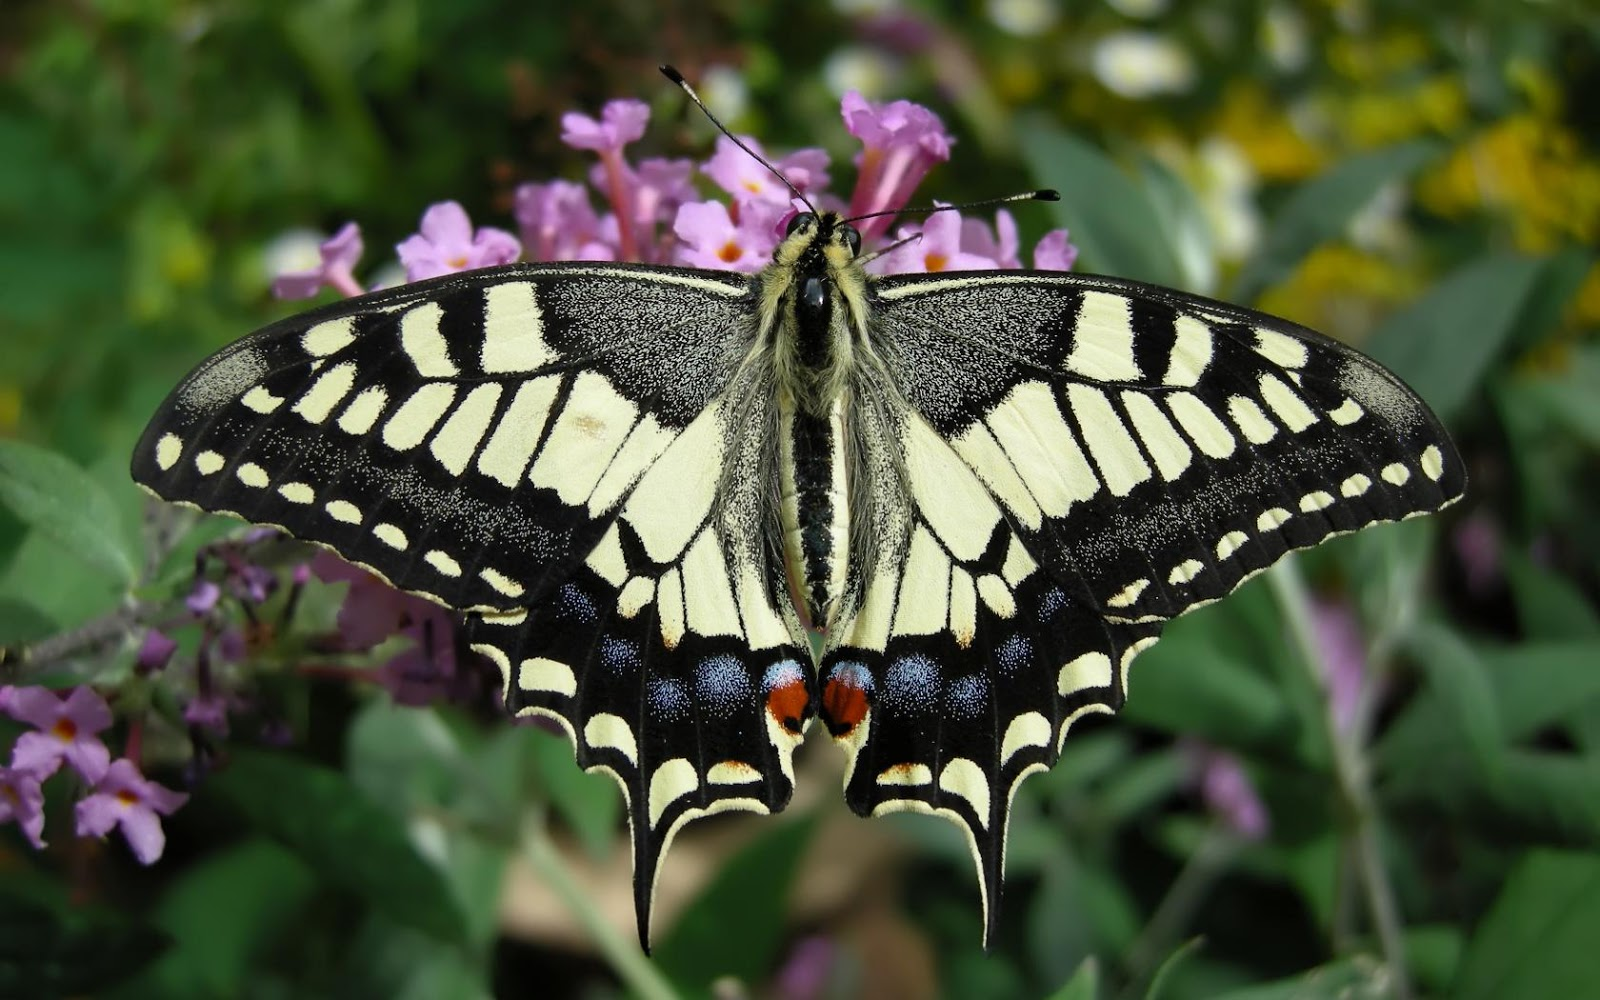 Http Gardenofeaden Blogspot Com 2013 08 The Swallowtail Butterfly Html